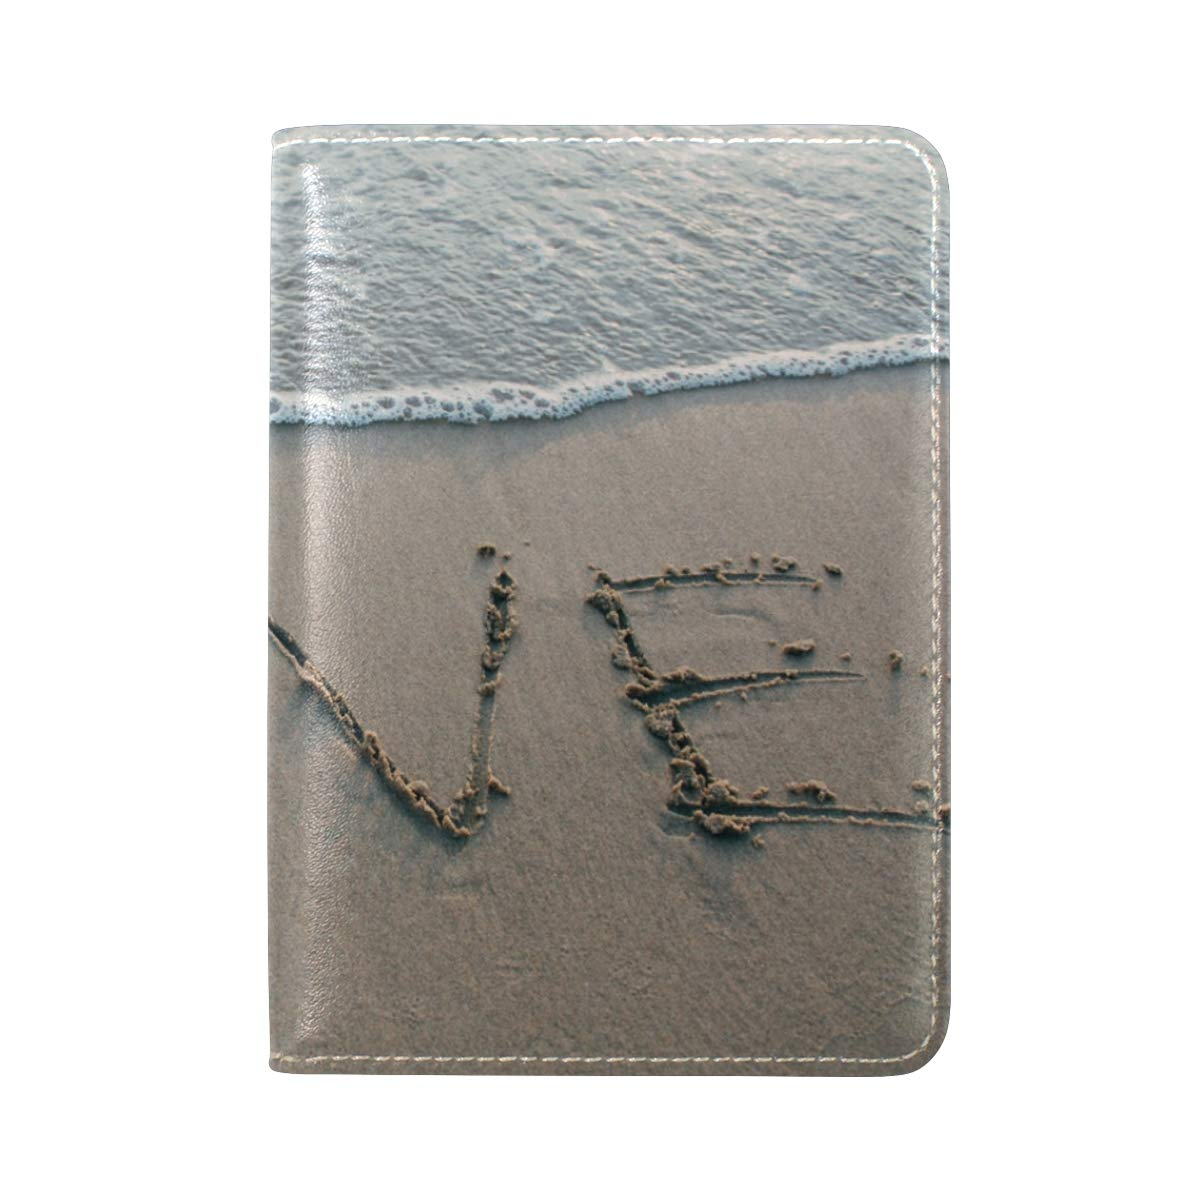 Beach Coast LOVE One Pocket Leather Passport Holder Cover Case Protector for Men Women Travel